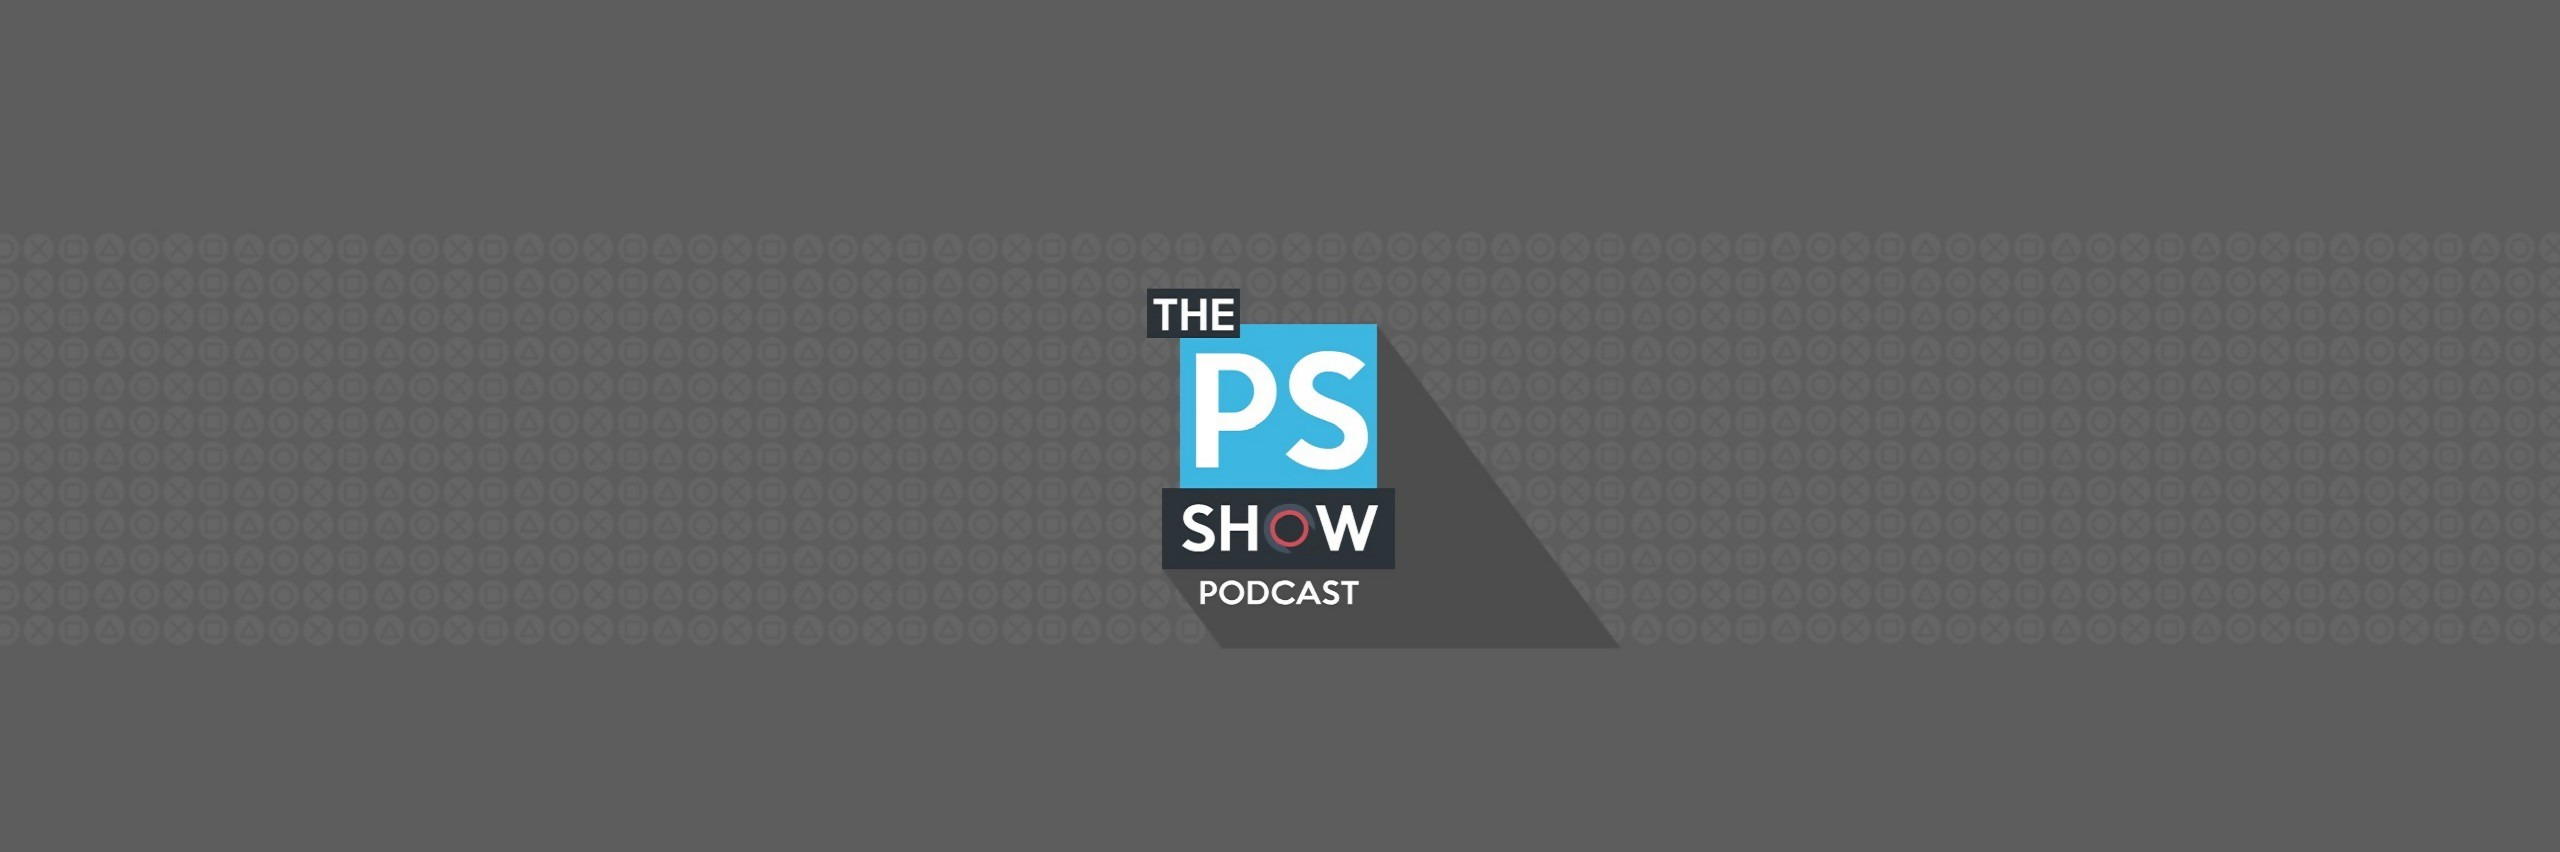 The PlayStation Show